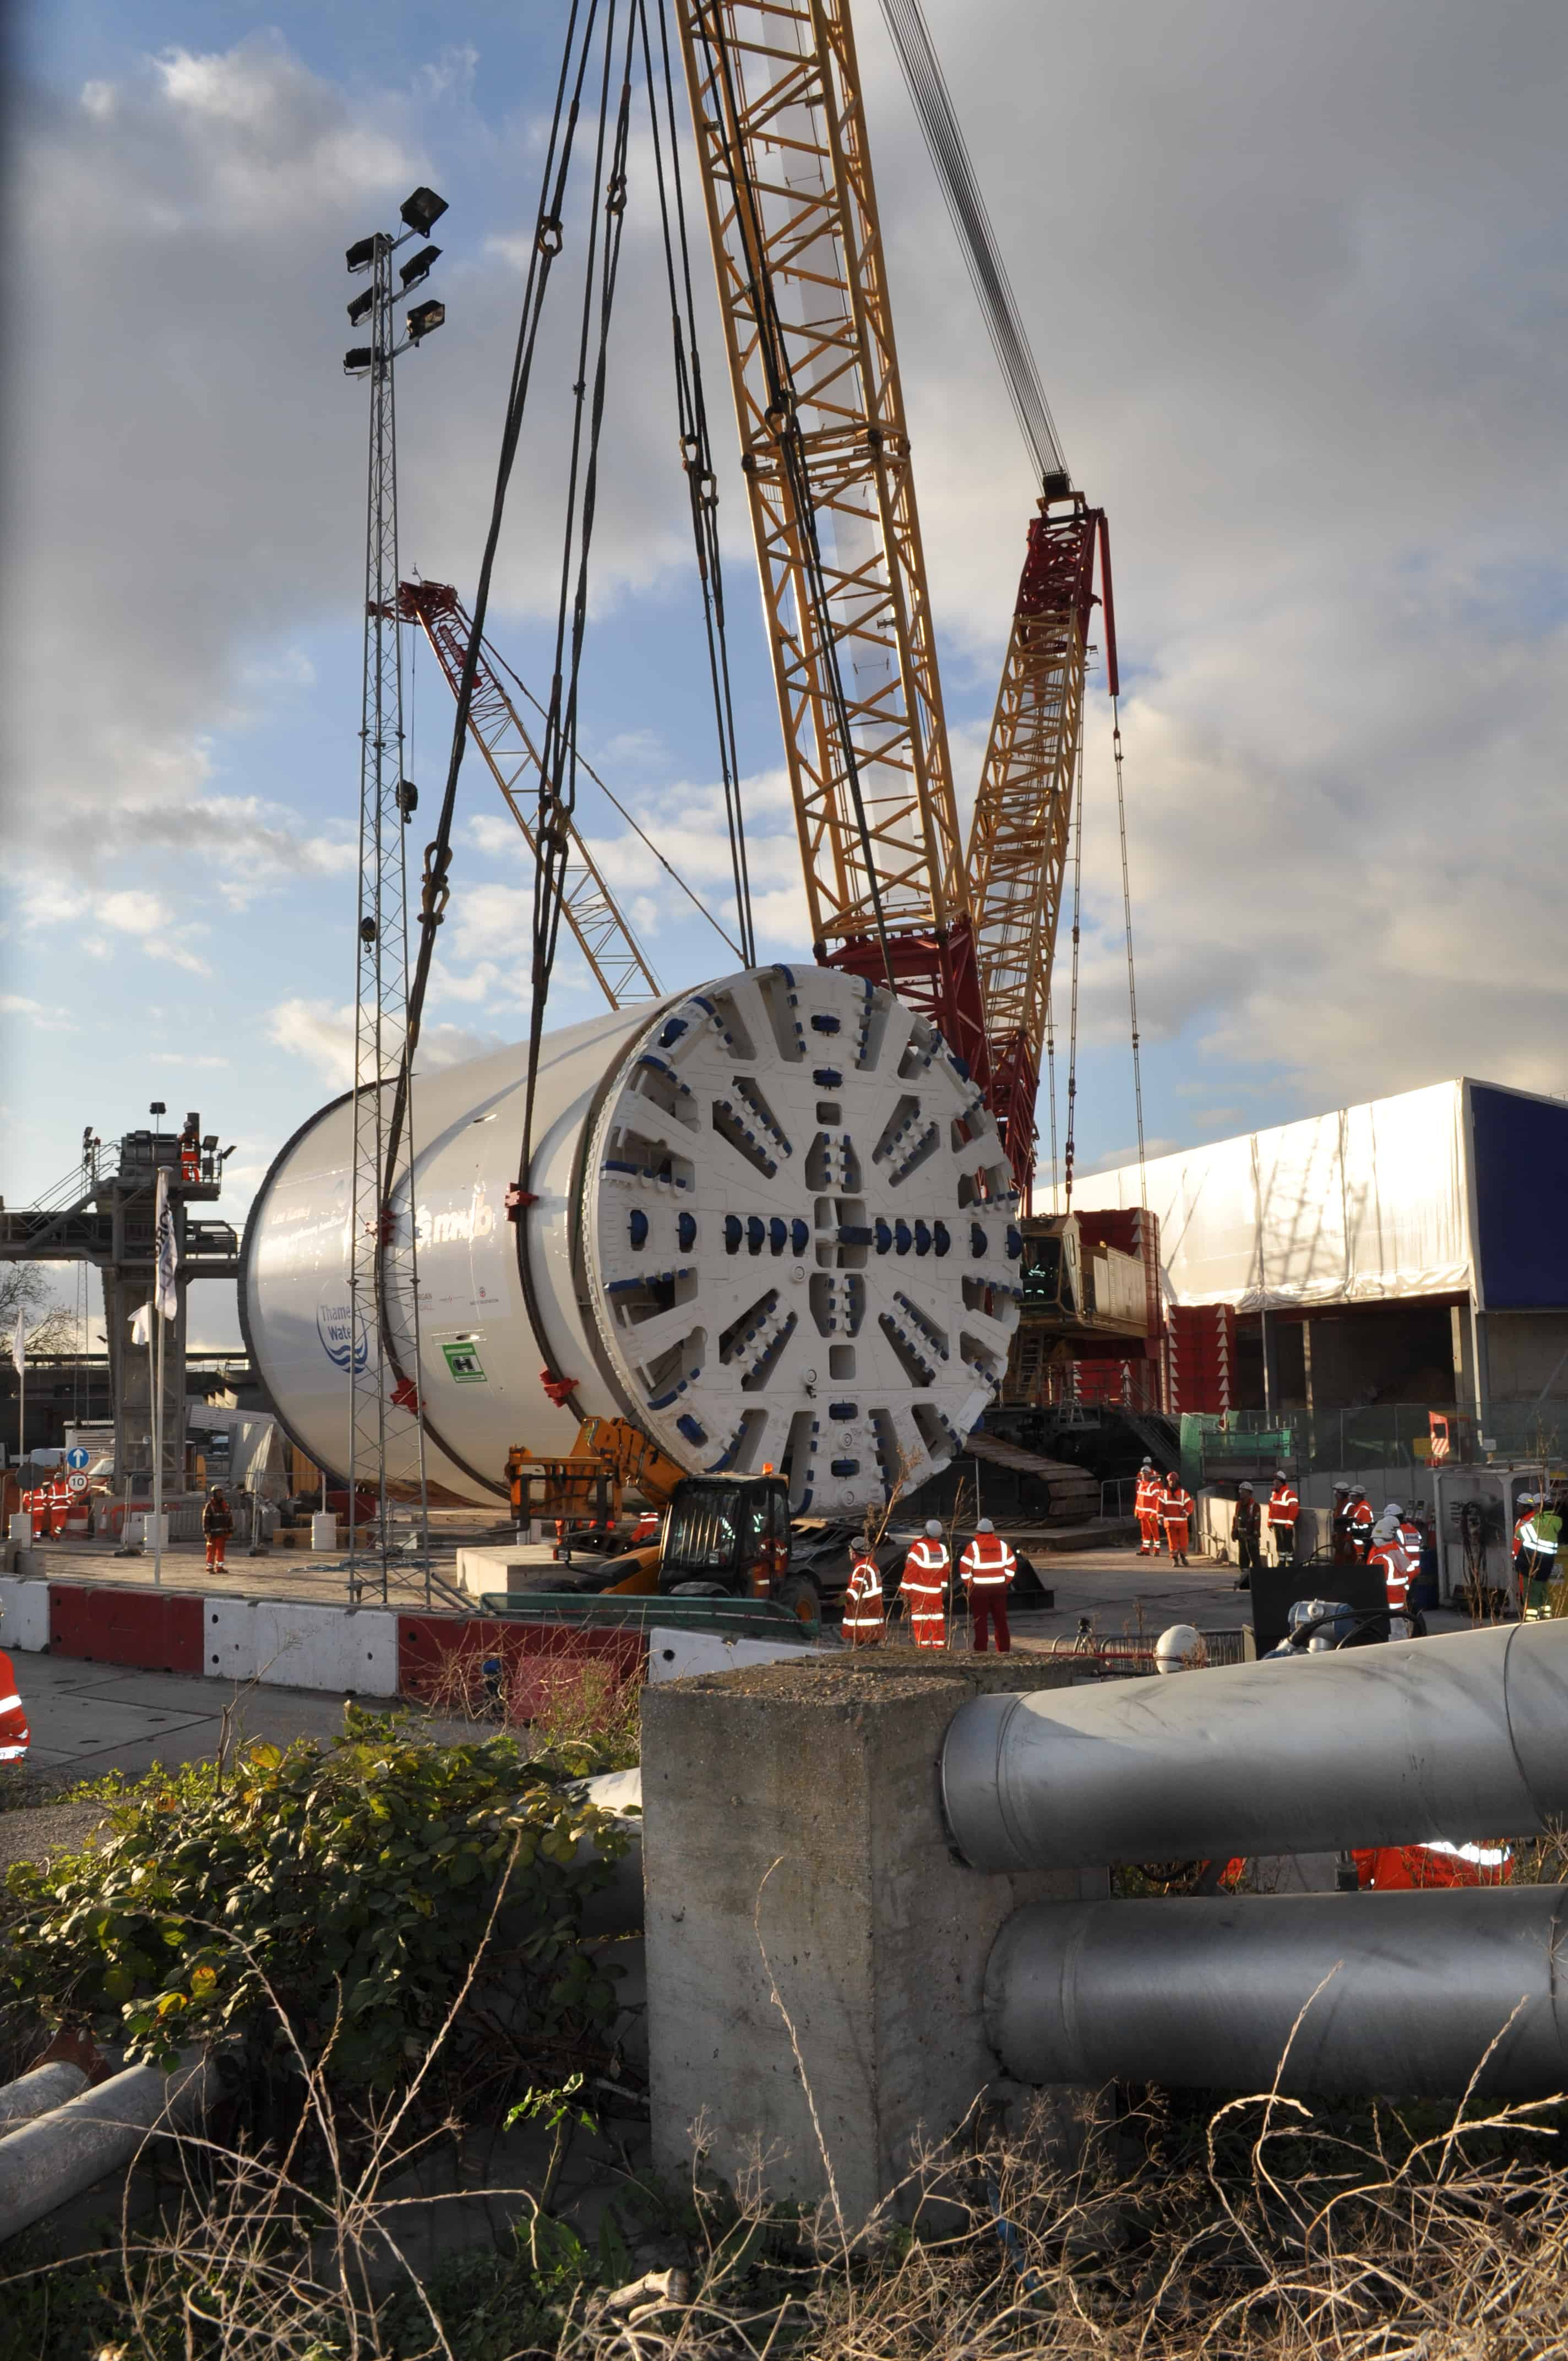 Te Thames Tideway tunnel - of which the Lee Tunnel, bored by this machine, is a part - will need large numbers of engineers